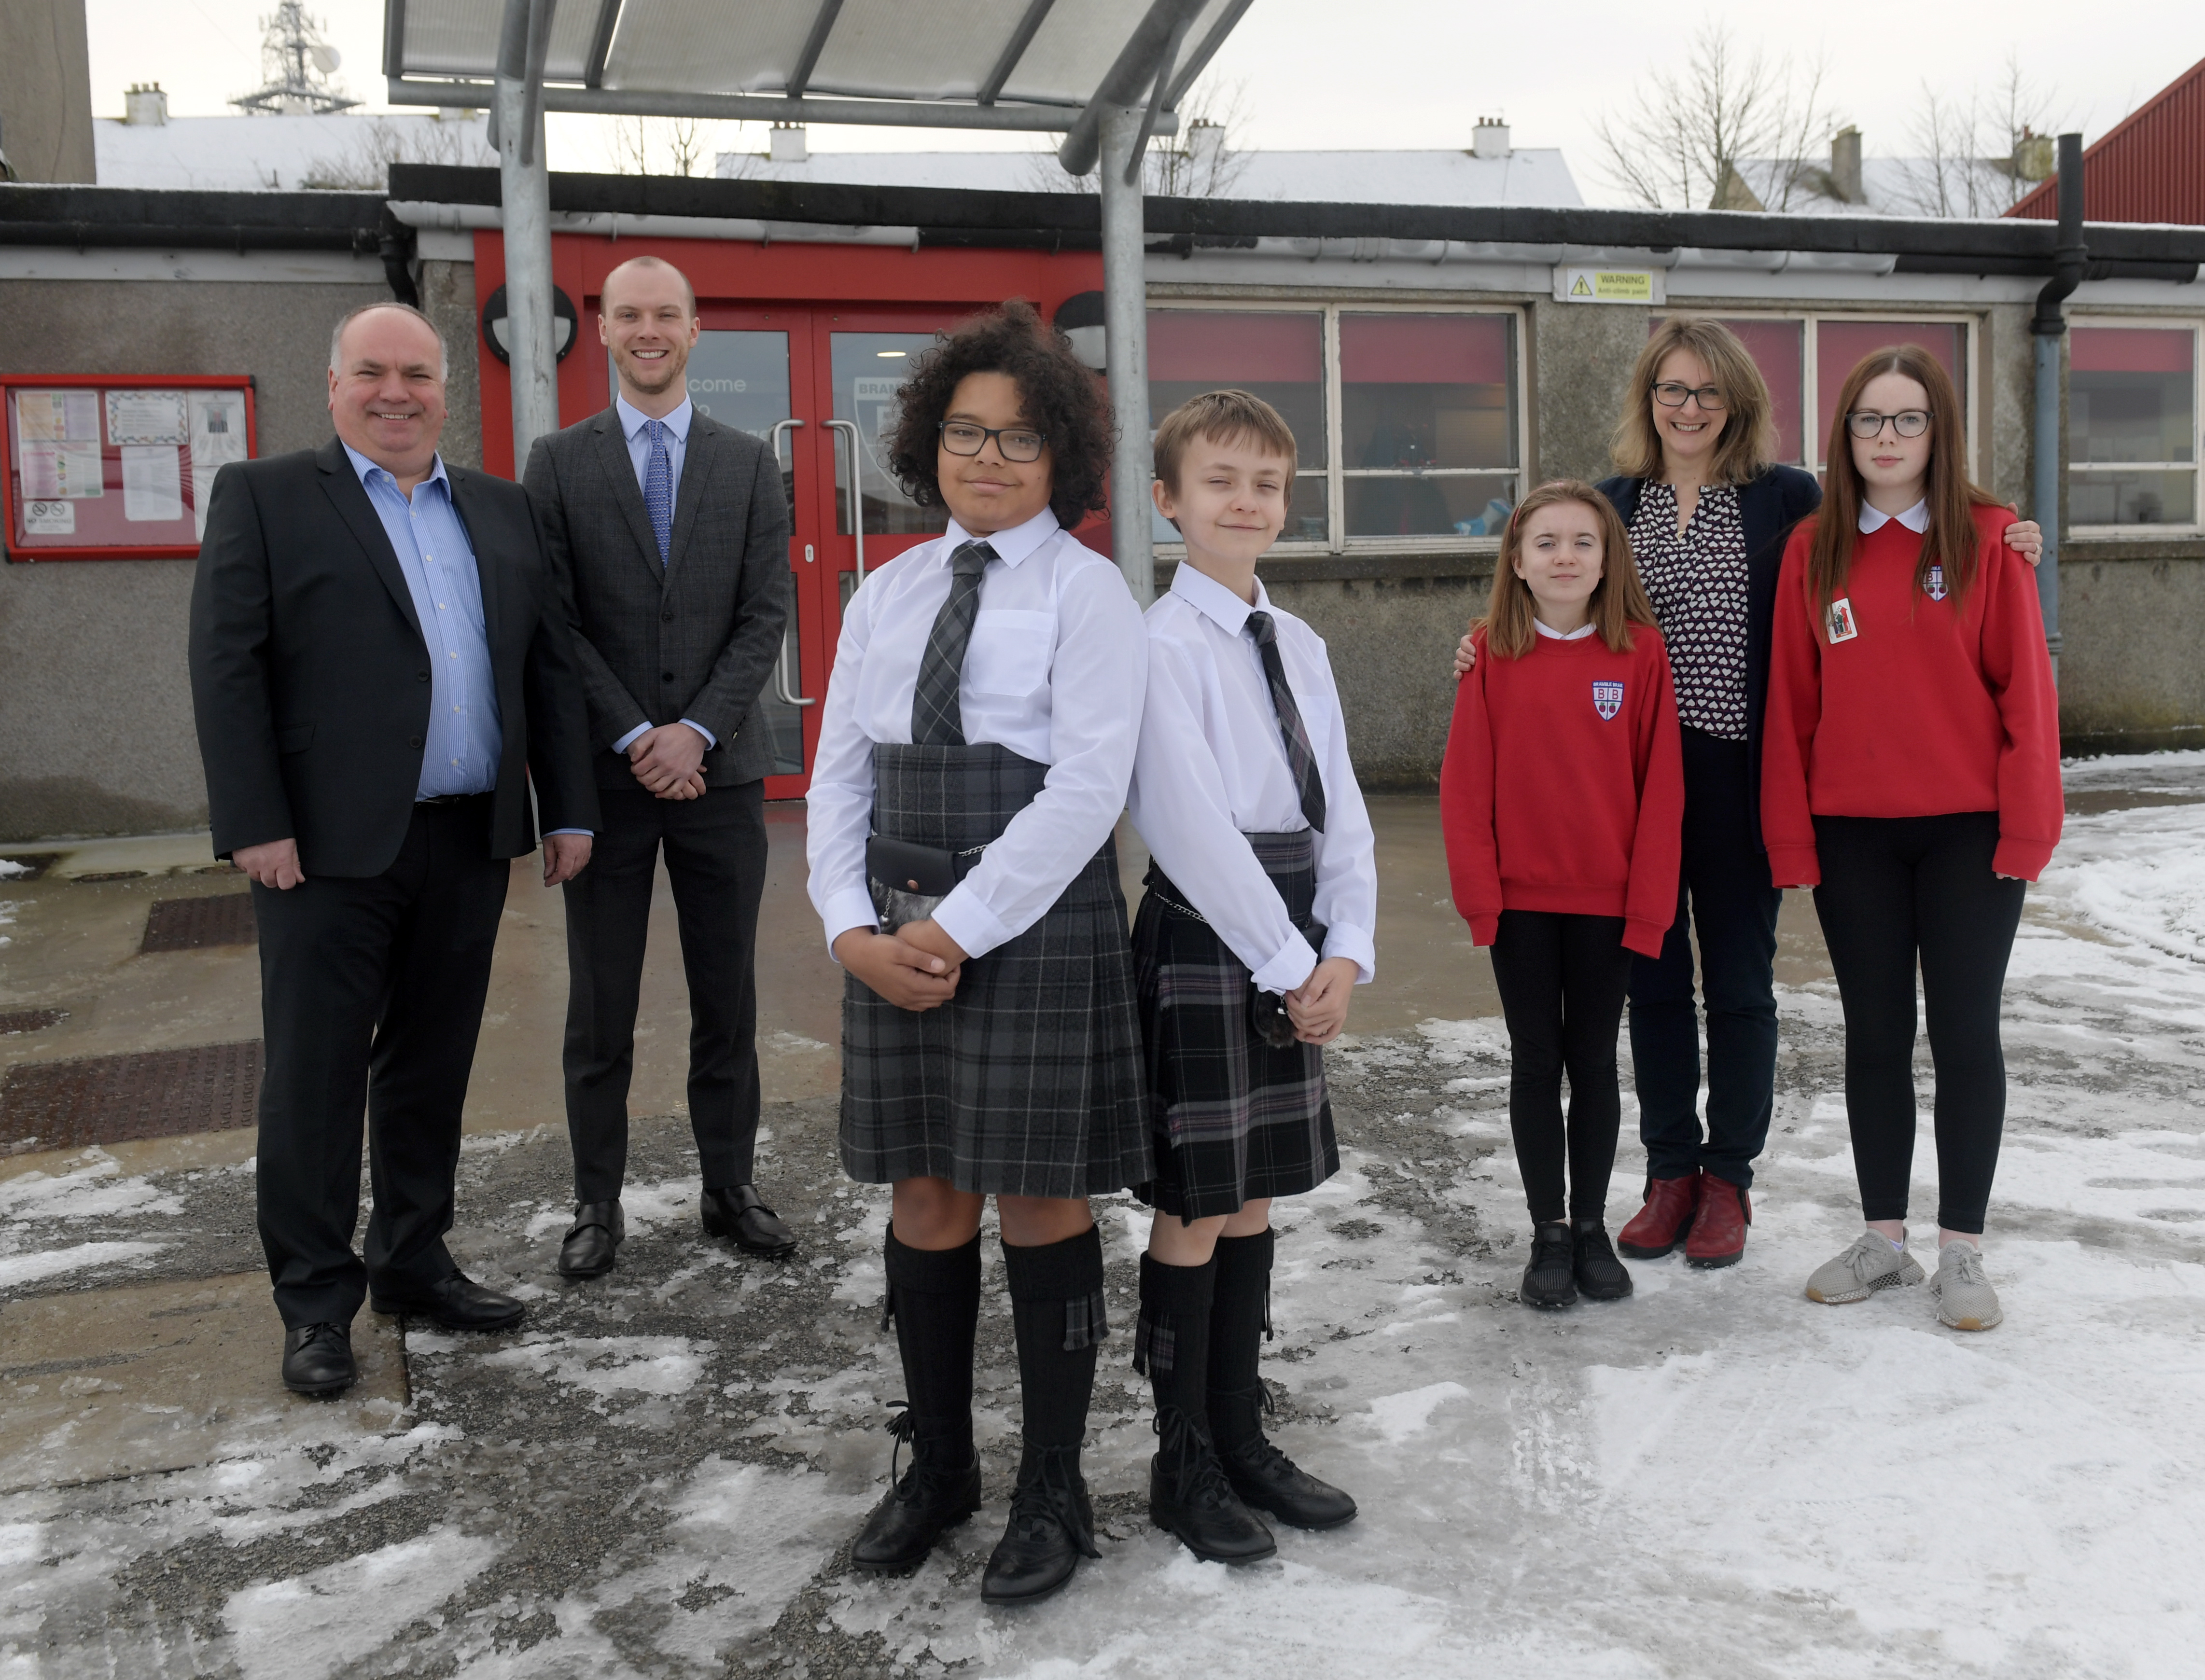 Milsom & Main's David Main, Ross Gardiner from Brodies, pupils Sammy Pedro, Arran Havelock, Katie Kerr and Jessica Wood with Buisiness and Community Ambassador Chris Dunhill